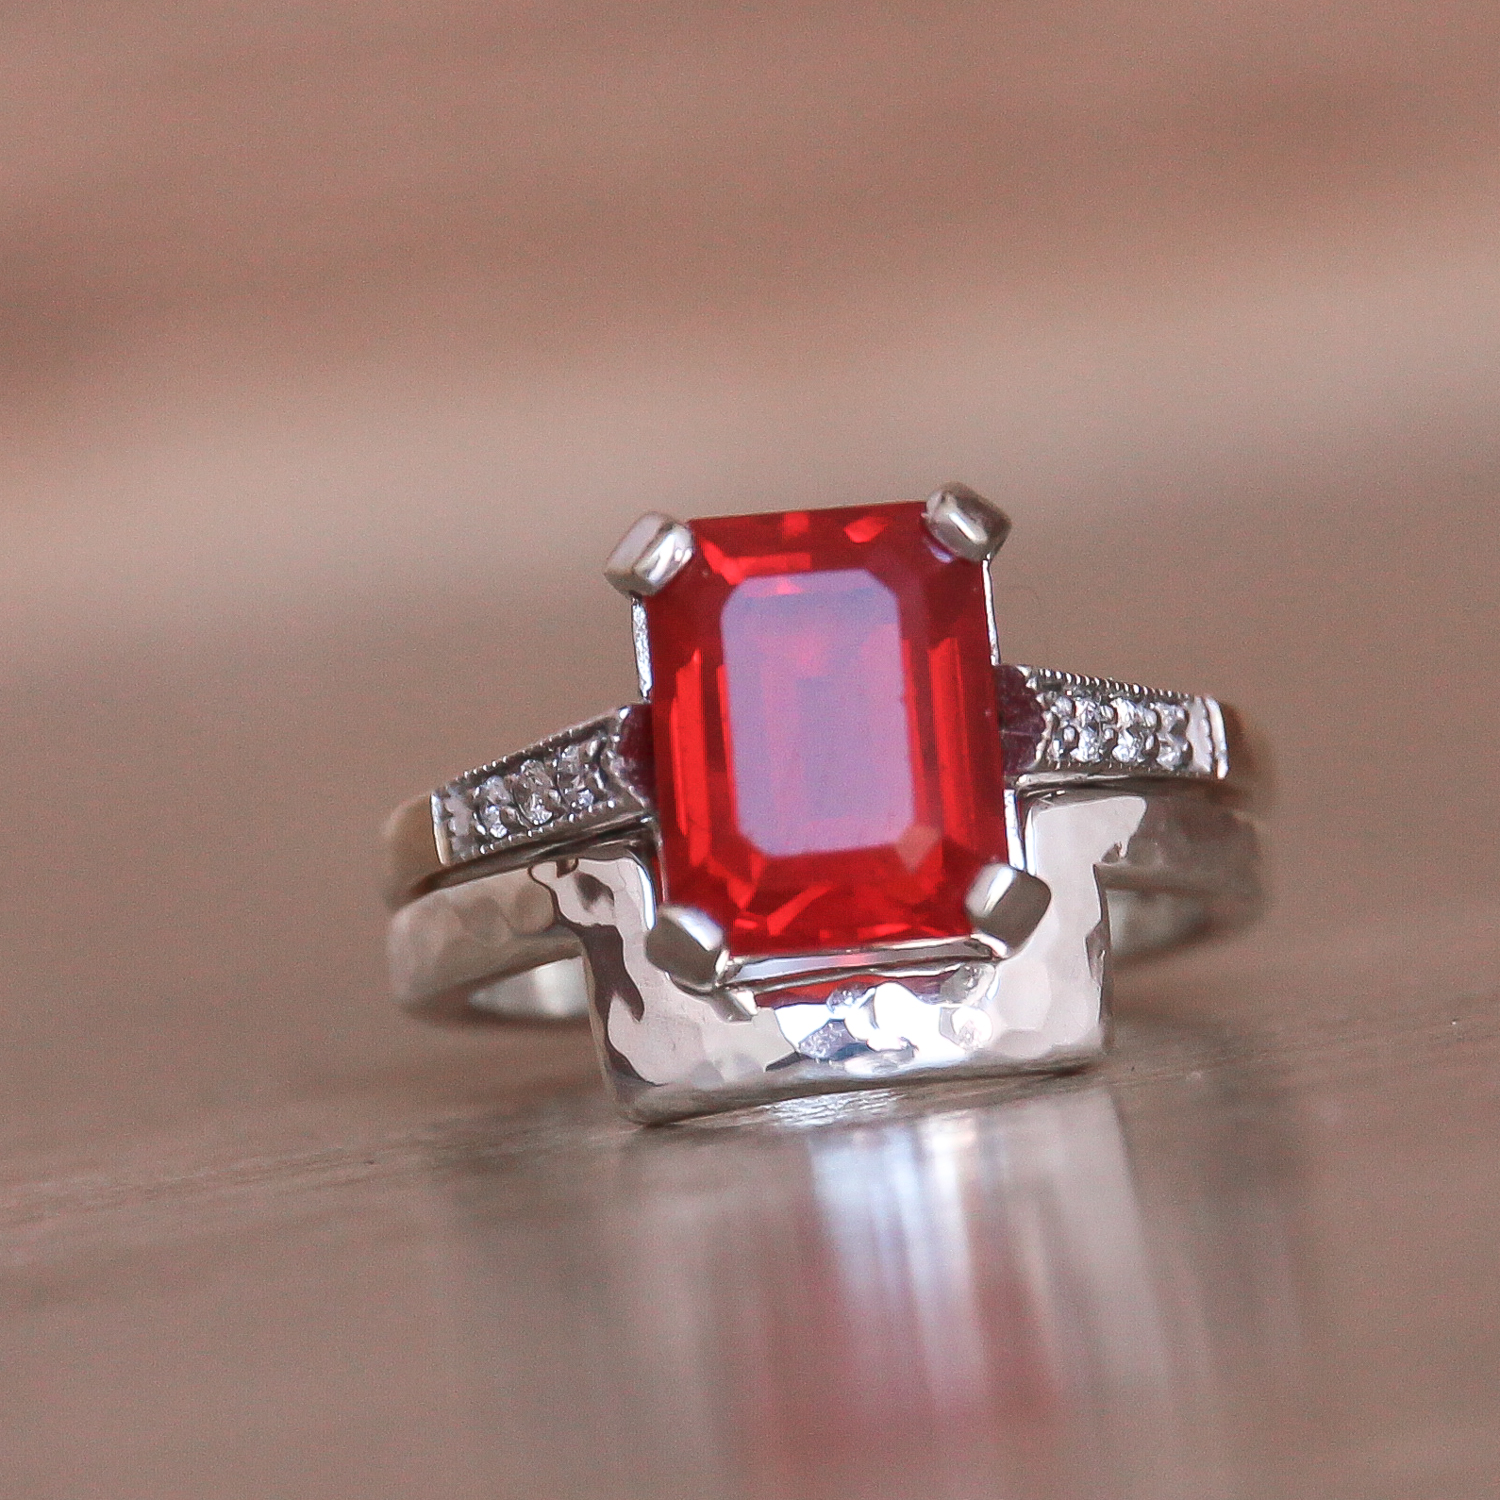 Shaped wedding ring for emerald cut engagement stone